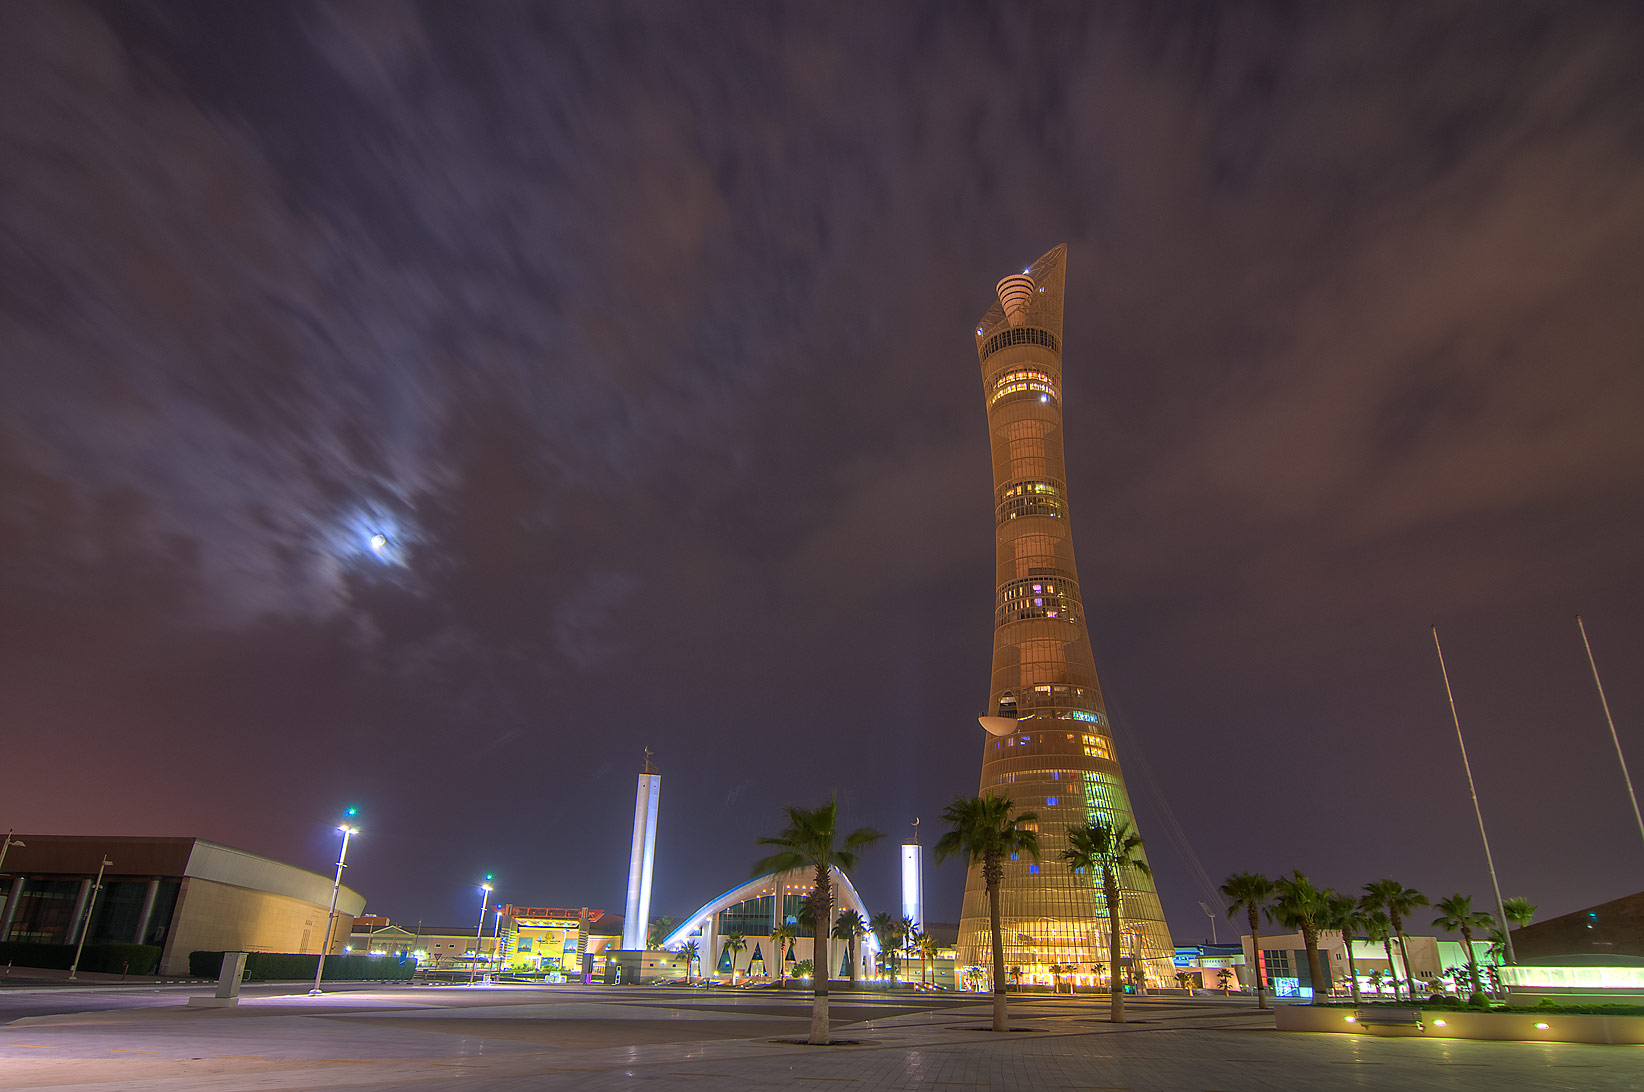 Torch Hotel and a mosque in Aspire Zone. Doha, Qatar